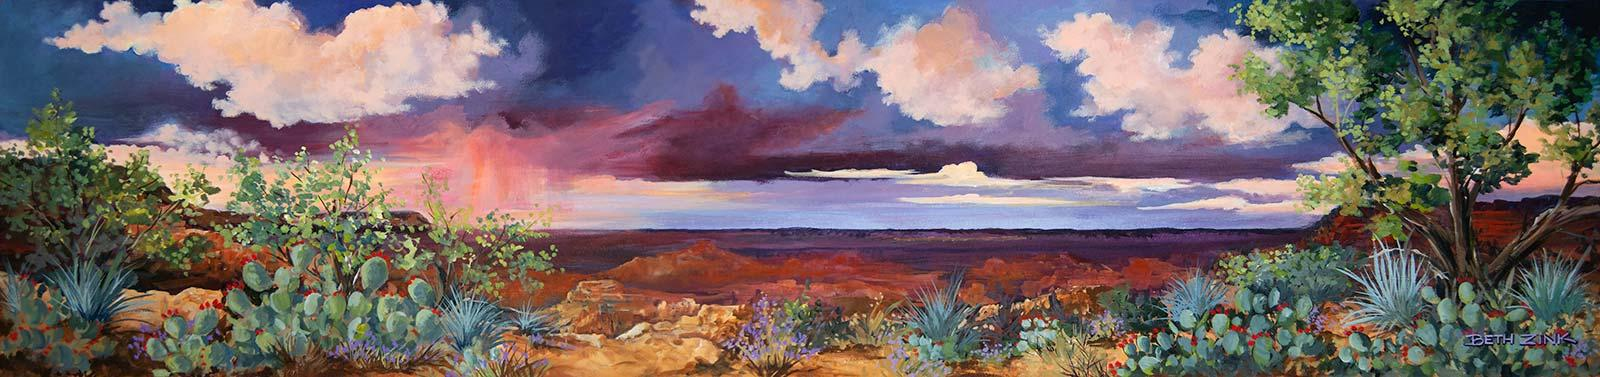 beth zink painting desert storm